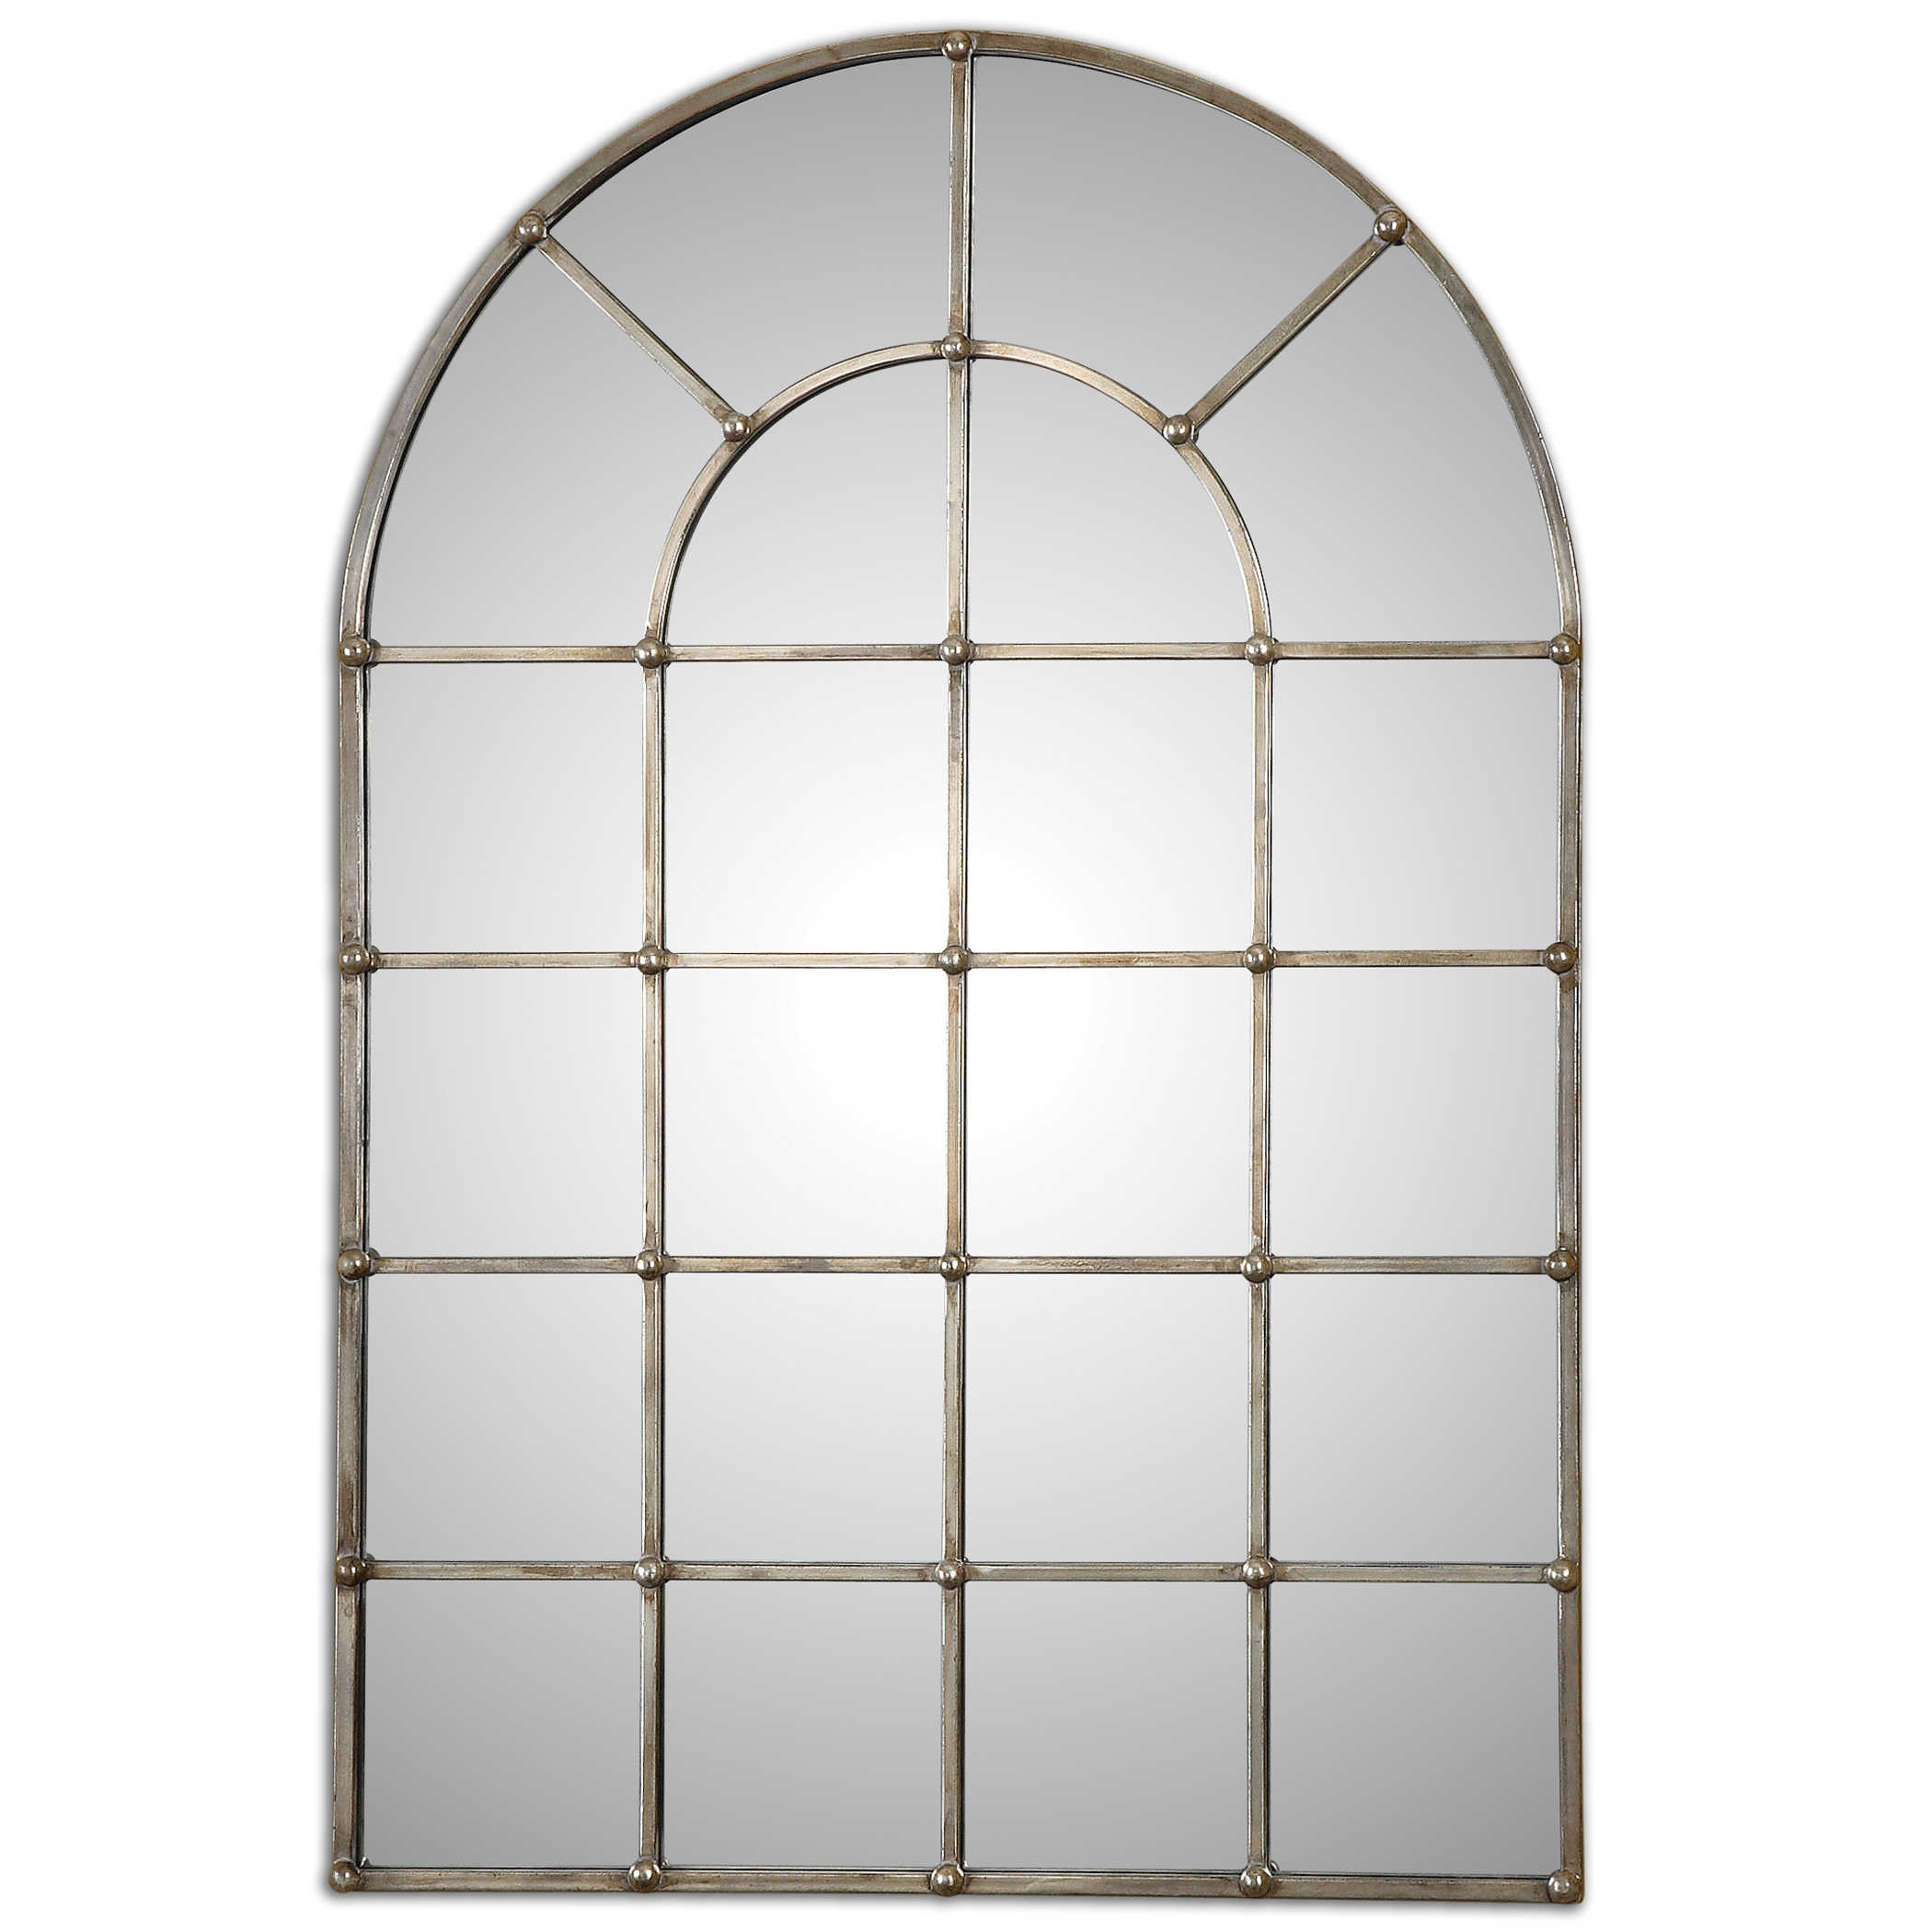 Hand Forged Arch Mirror-$578.00